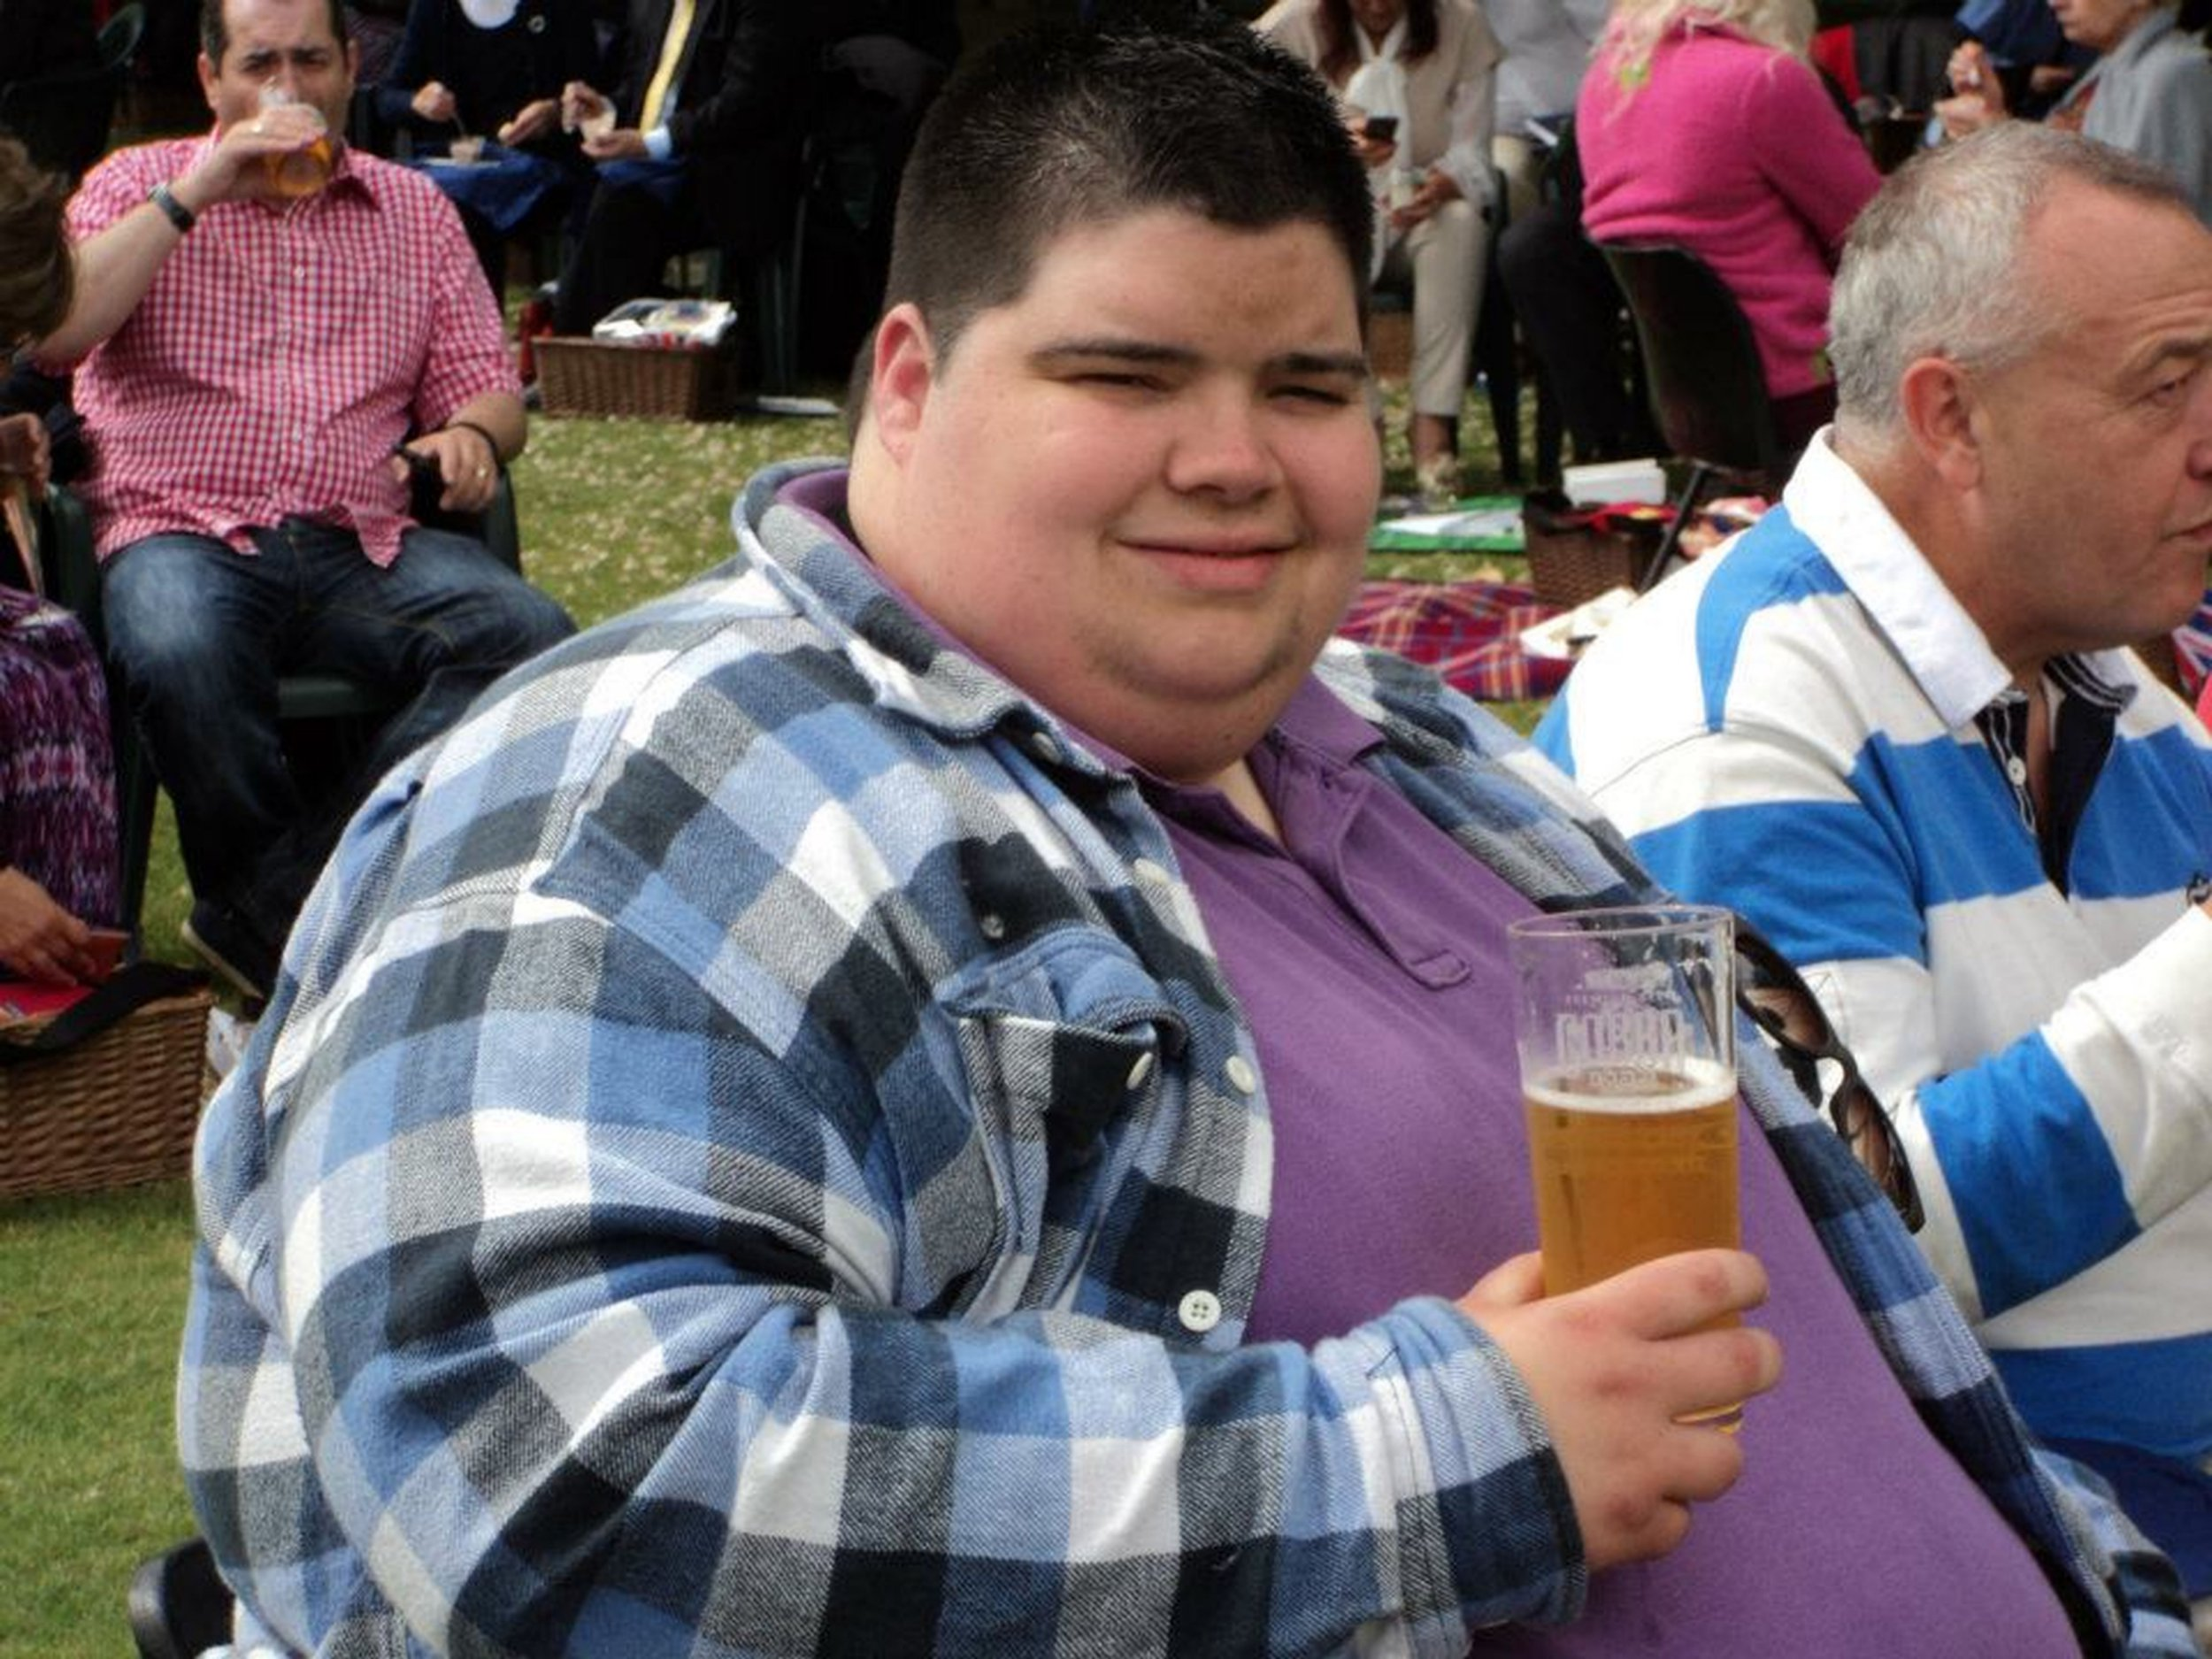 A man has lost an incredible 24-and-a-half stone to turn his life around. Dan Howie, from Chaddesden, Derbyshire, has lost more than half his body weight since 2013, when he weighed 42-and-a-half stone, and was struggling to cope both physically and mentally. Day-to-day tasks most take for granted were a struggle for Dan, who had to buy two seats on planes, couldn't fit through the turnstiles at Pride Park, and was turned away from rollercoasters, all because of his size.